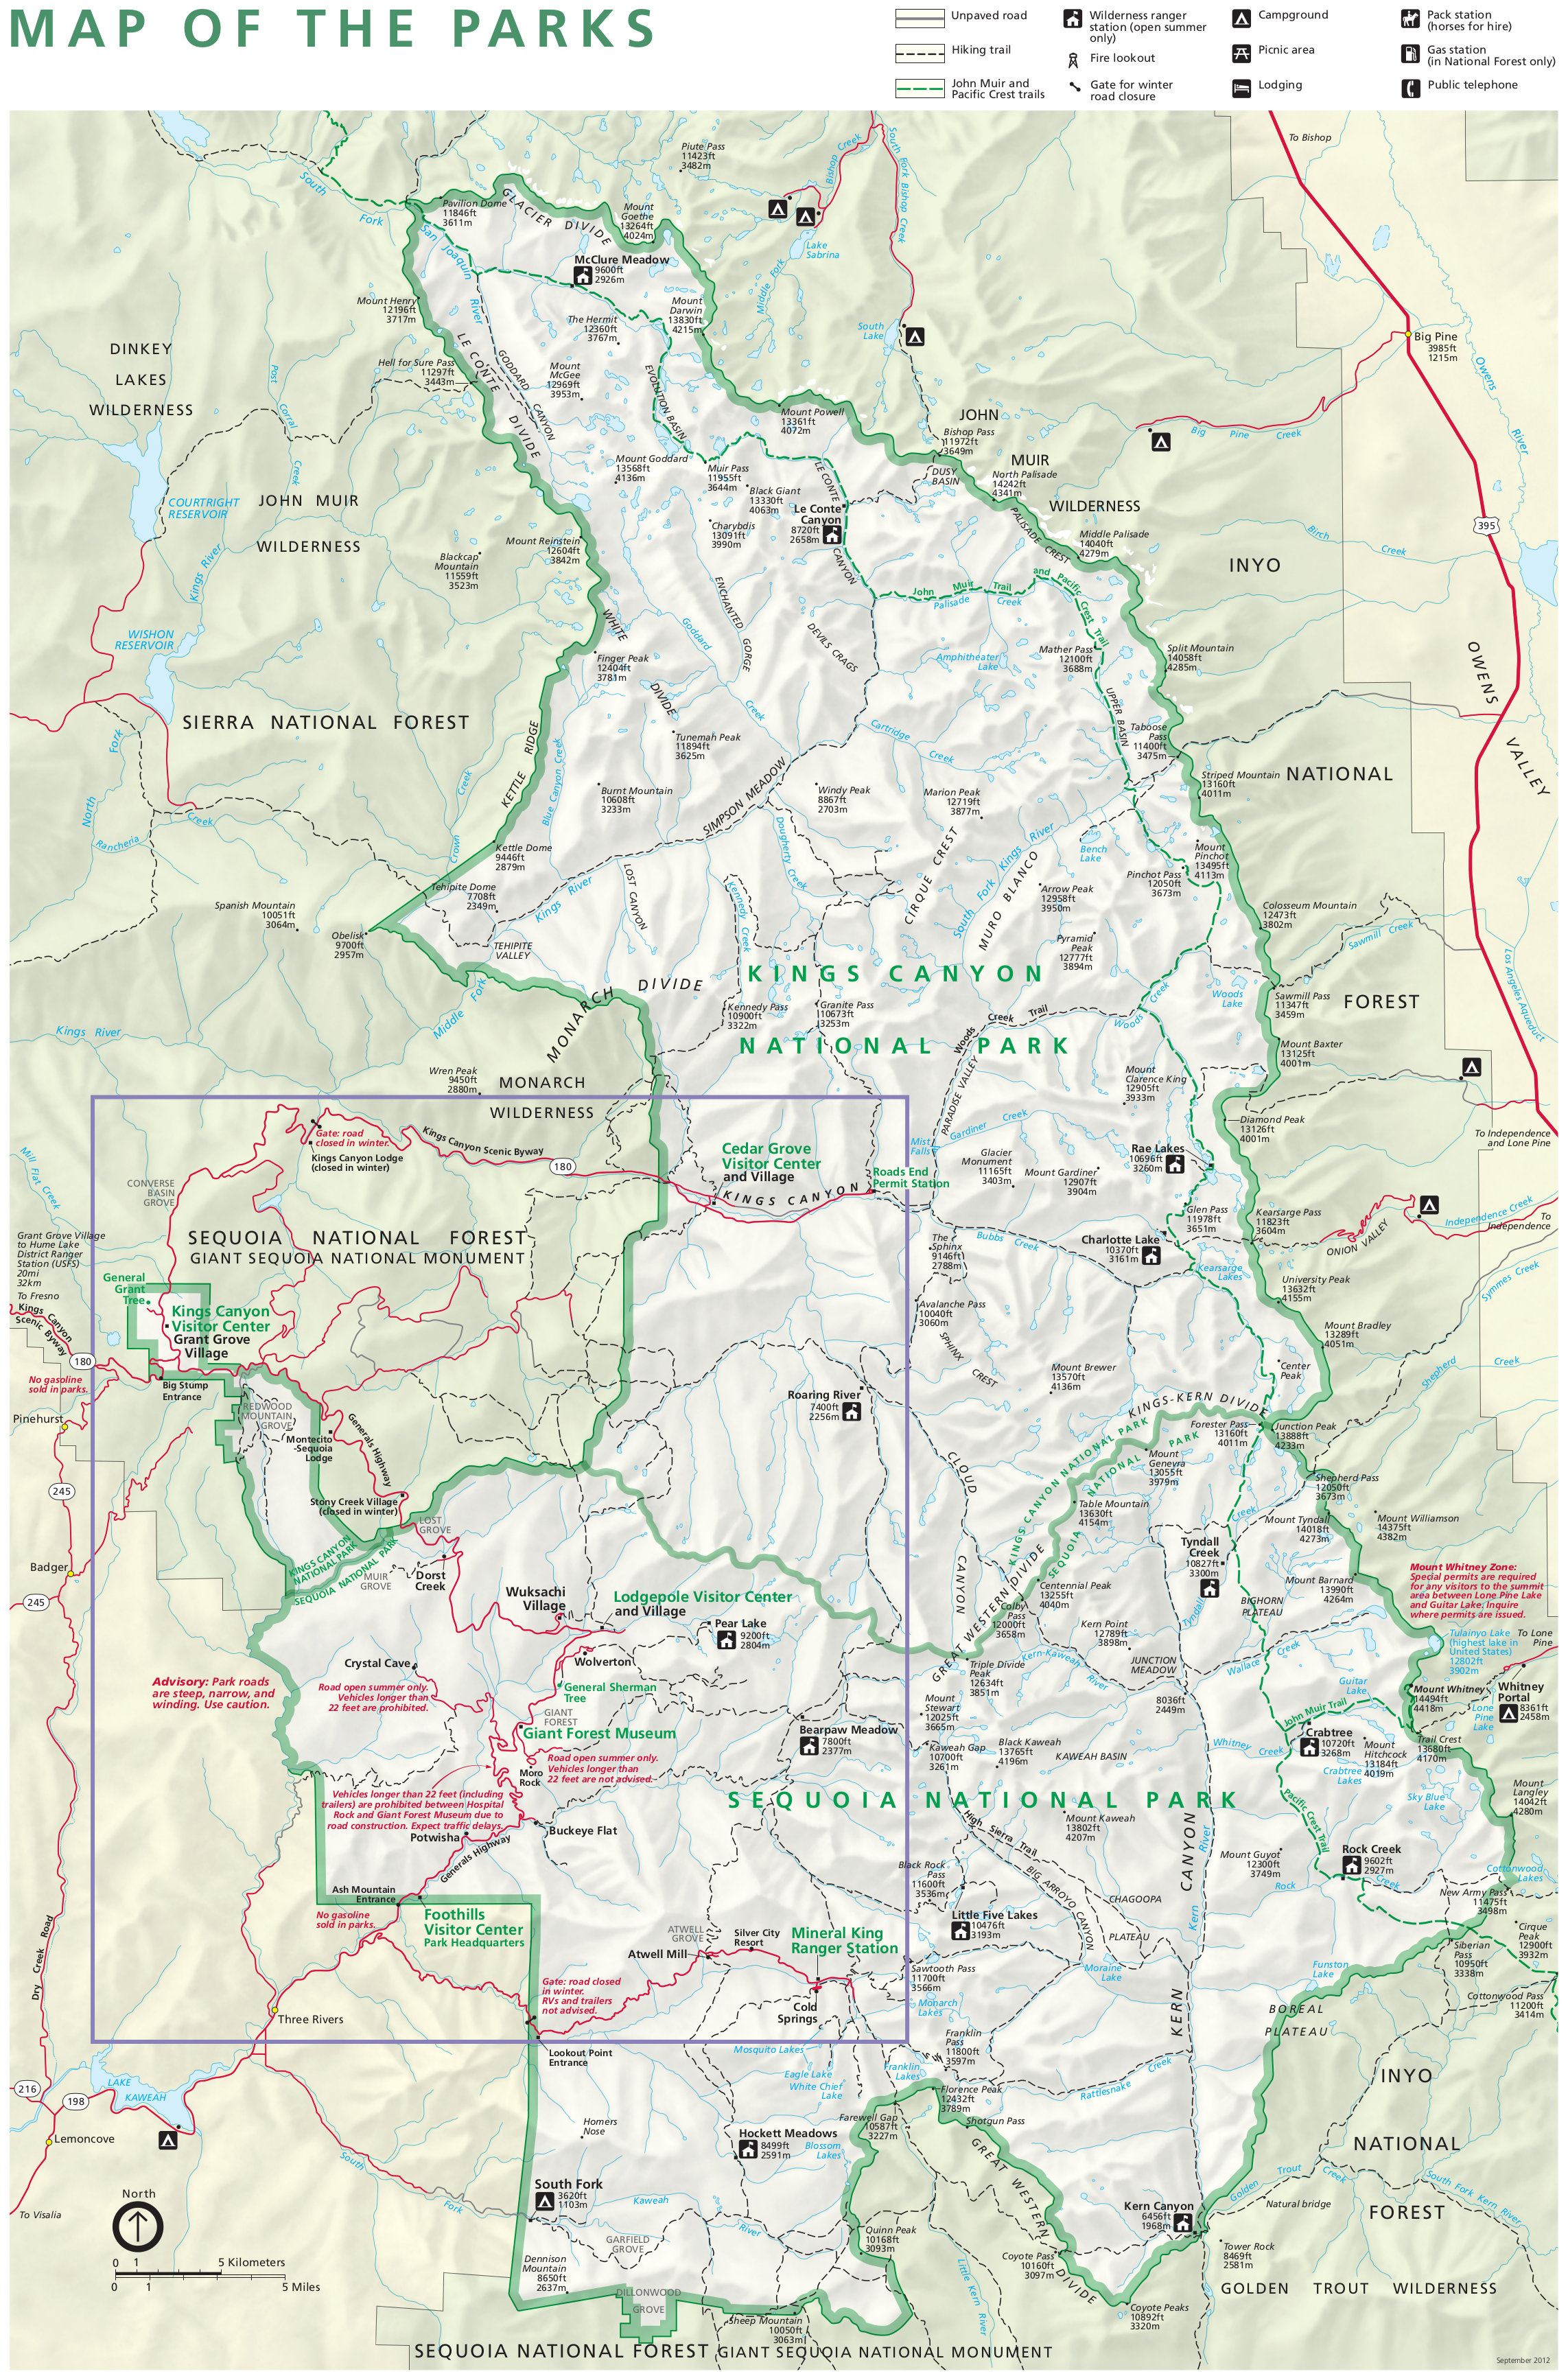 Kings Canyon Maps NPMapscom just free maps period